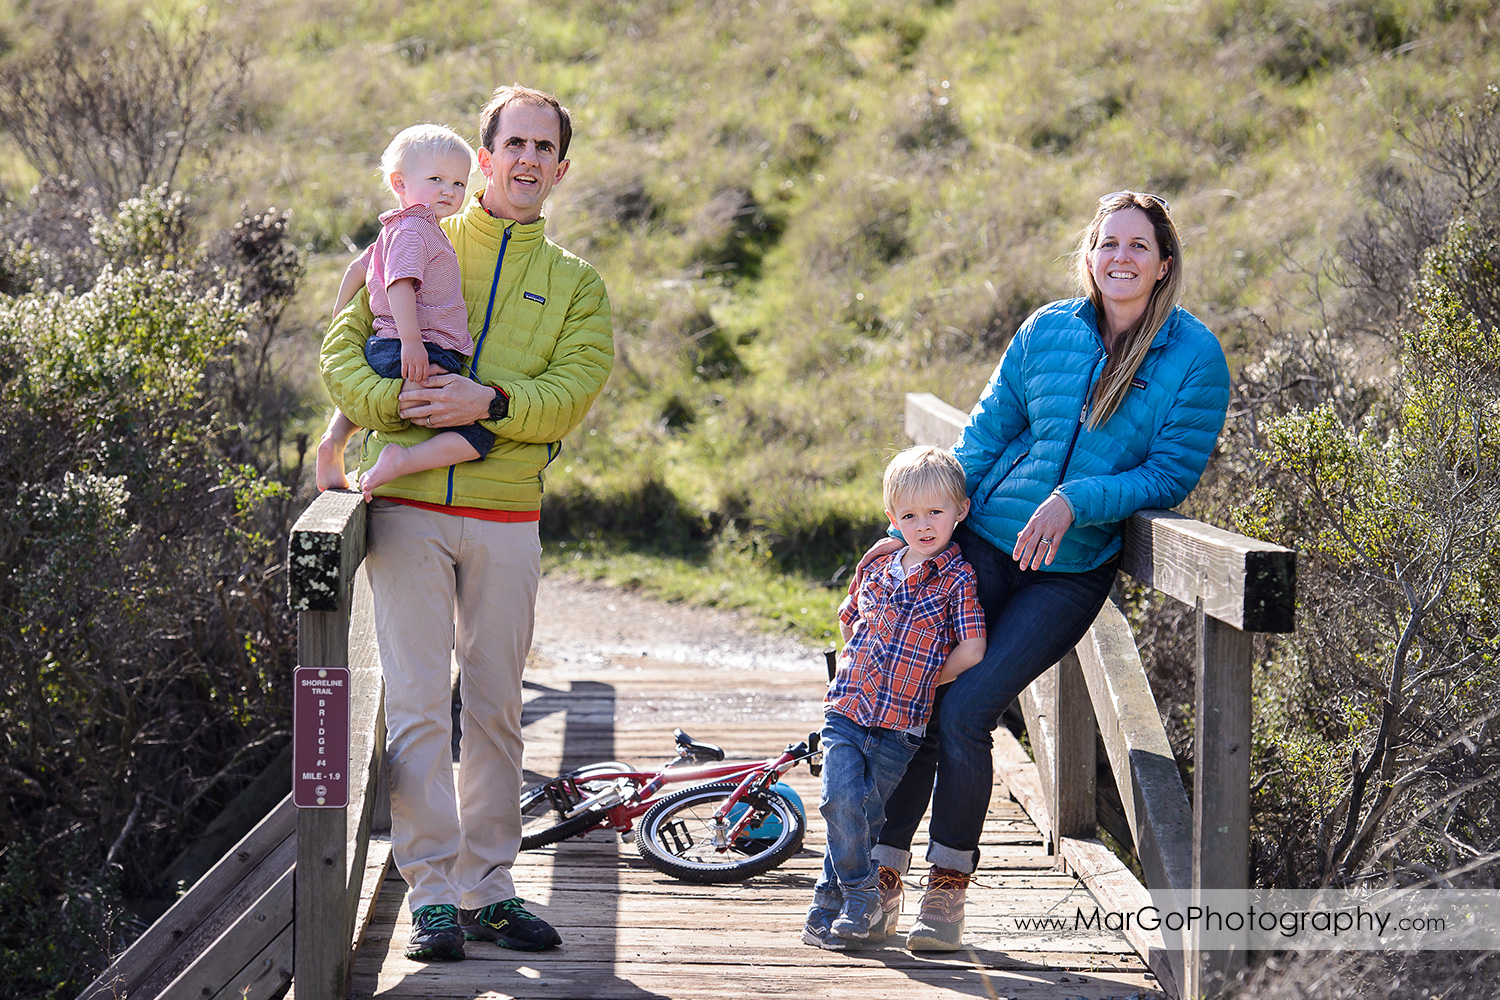 full body portrait of family of four standing on the wooden bridge during outdoor family session at San Raeael China Camp SP